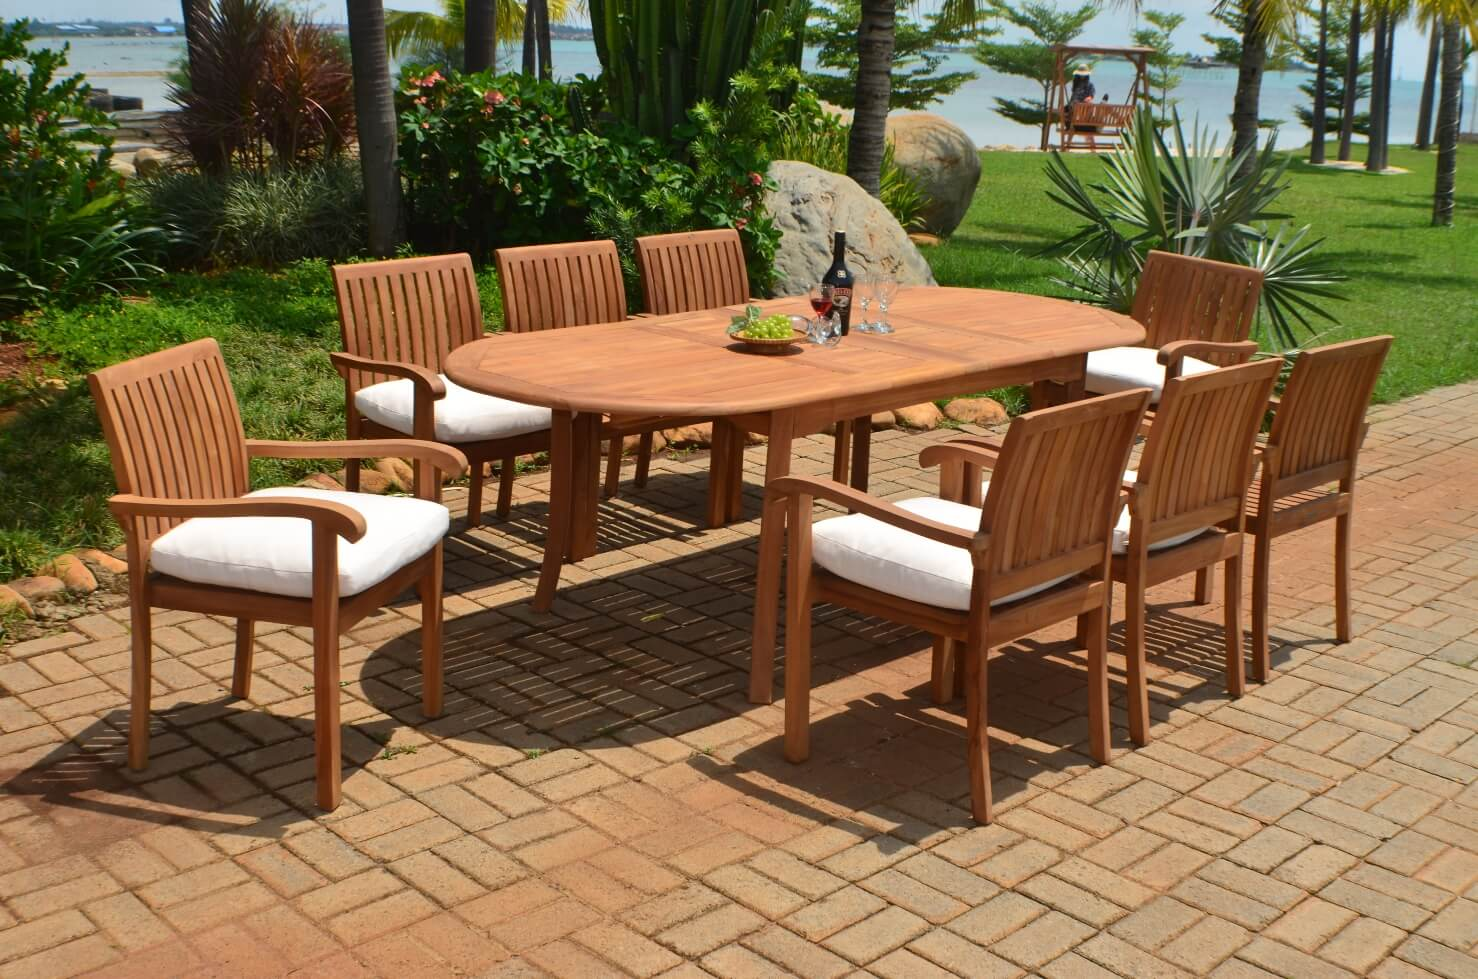 Double Extension Teak Oval Outdoor Patio Dining Table